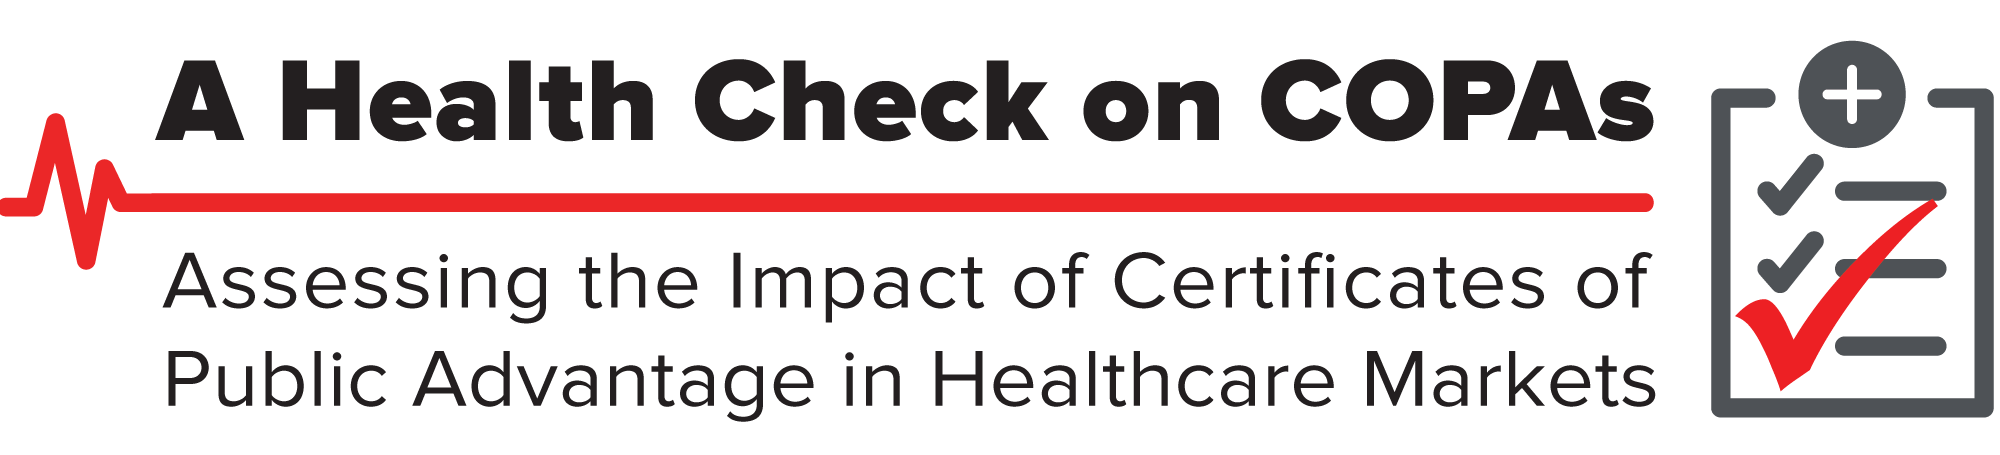 A Health Check on COPAs: Assessing the Impact of Certificates of Public Advantage in Healthcare Markets